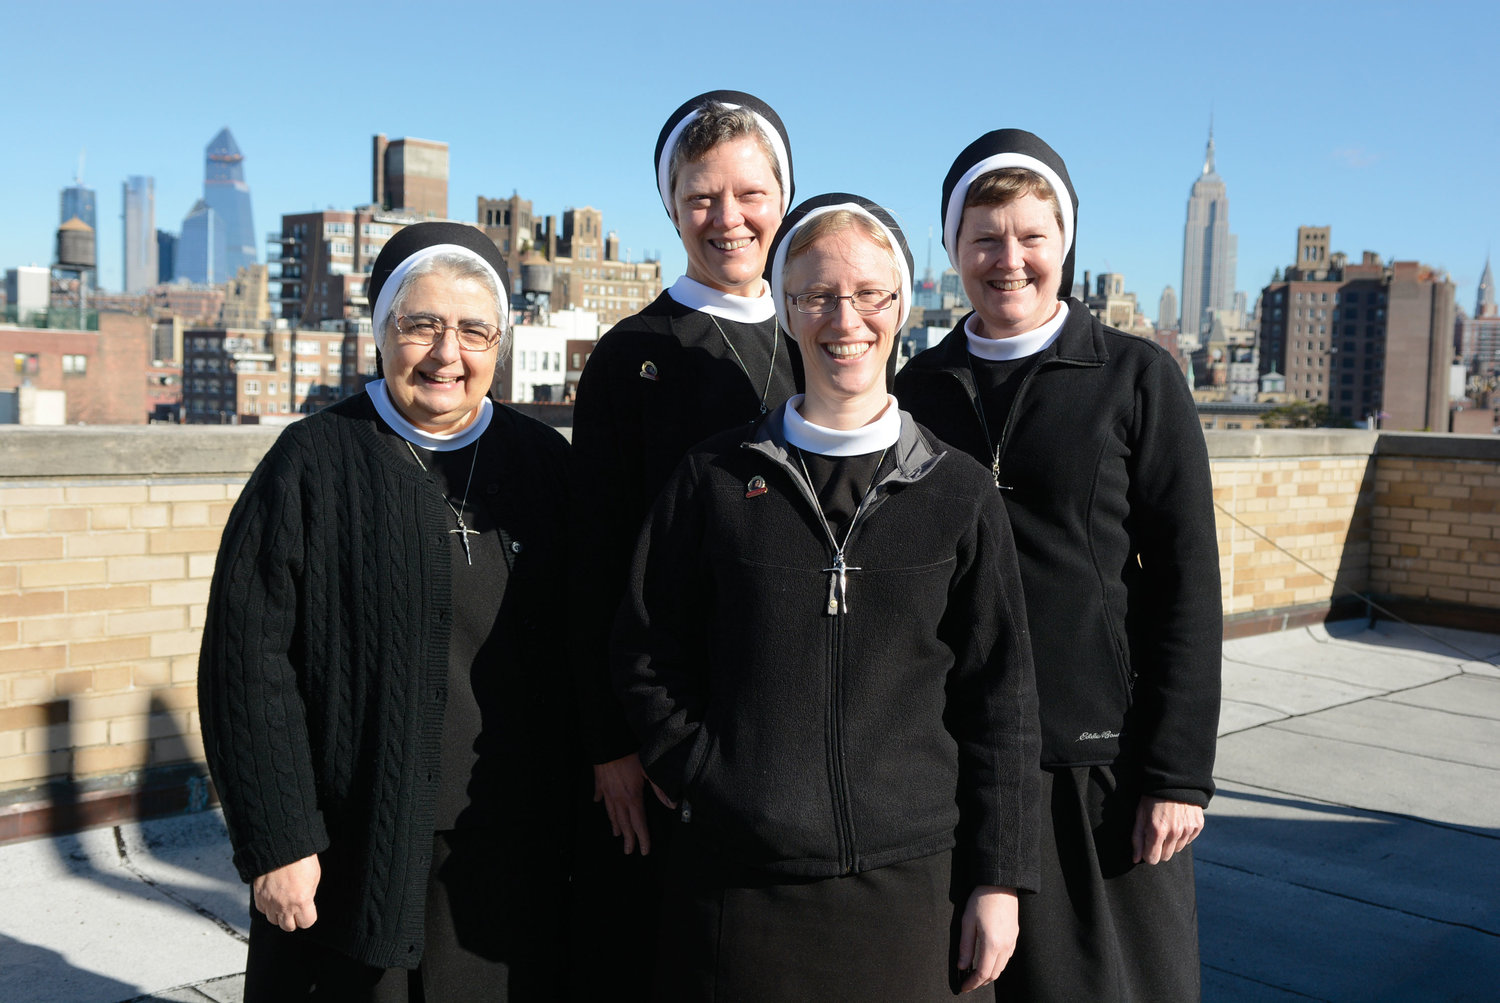 Sister Rita Marie Milano, A.S.C.J., Sister Colleen Therese Smith, A.S.C.J., Sister Bridget Mary Smith, A.S.C.J. and, in front, Sister Kathryn Press, A.S.C.J. The sisters assembled on the rooftop of Our Lady of Pompeii Convent and School in Manhattan Oct. 30.